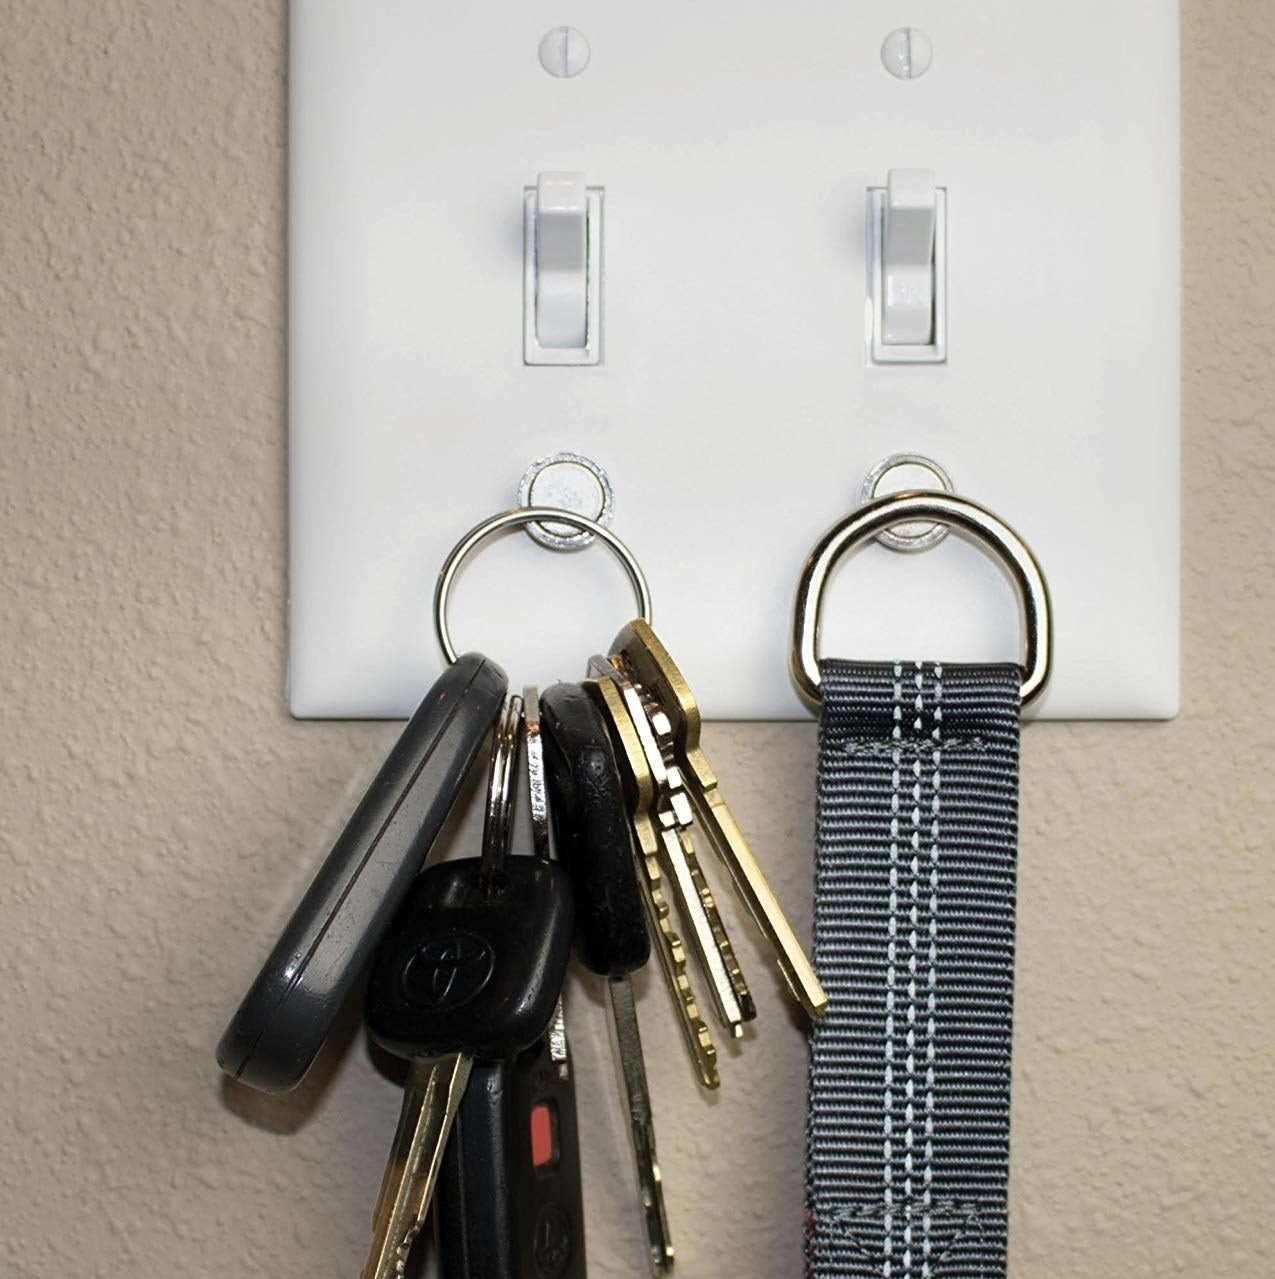 The keys magnetically sticking to the light switch